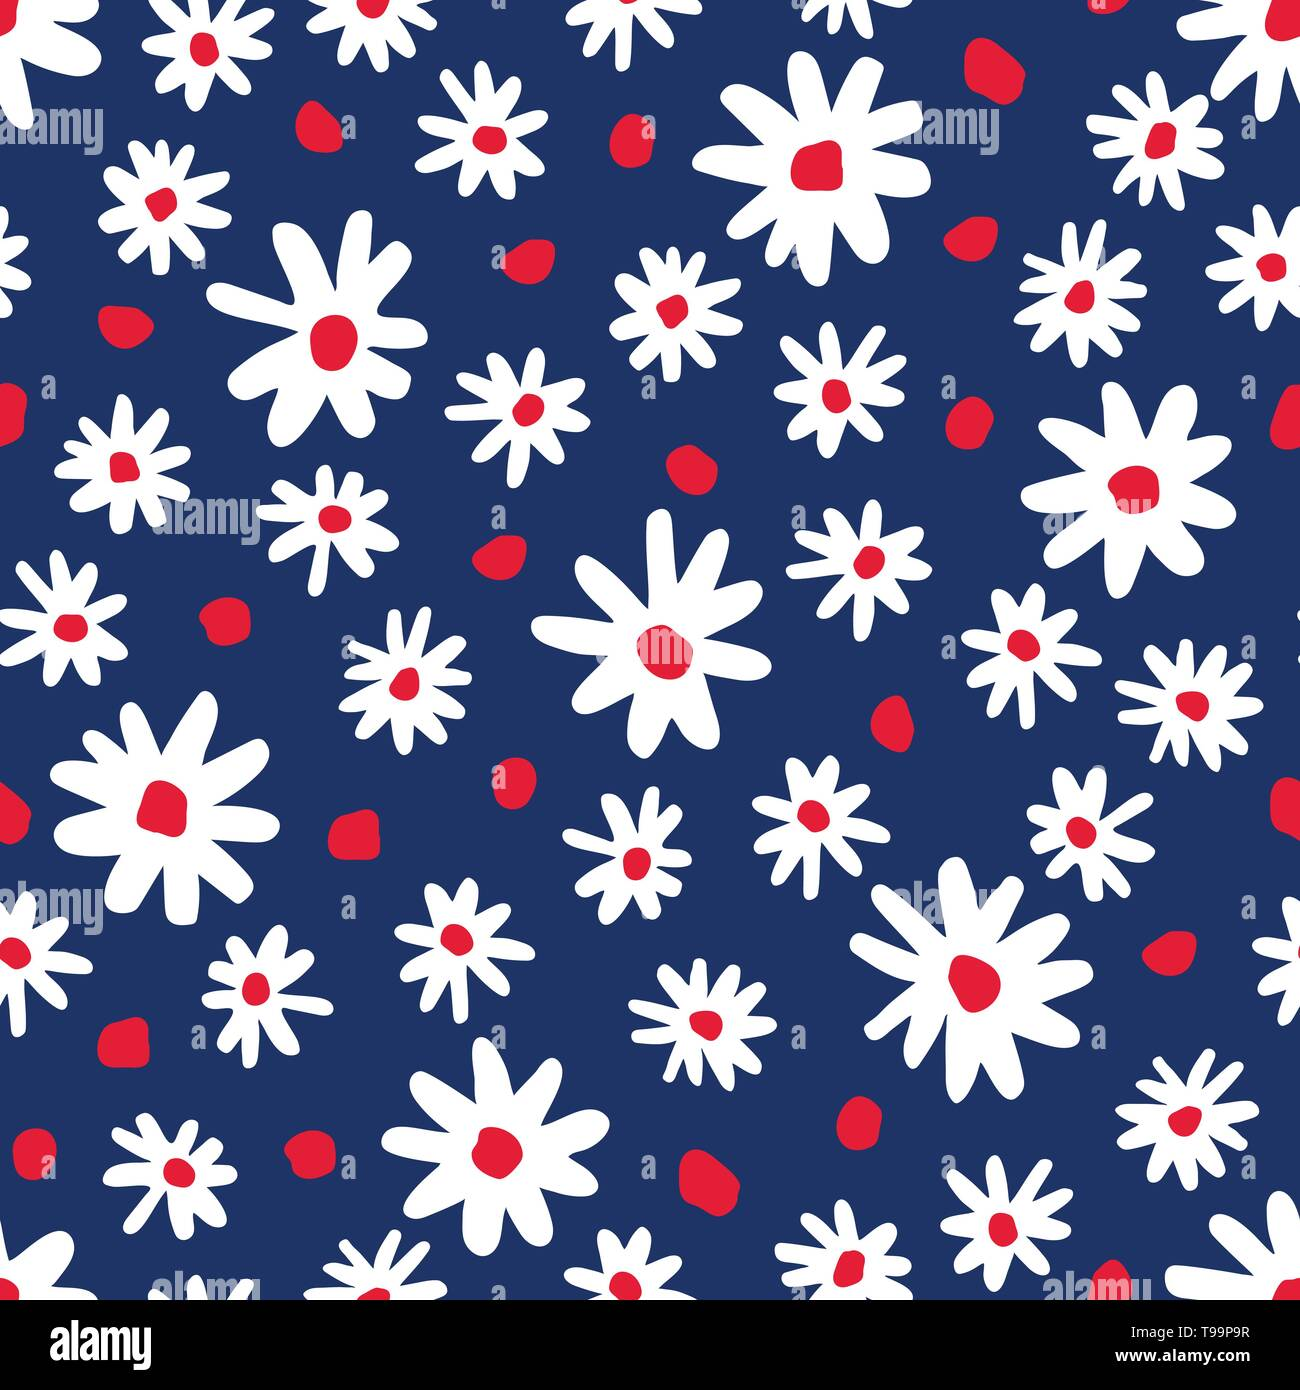 Bold graphic abstract daisies floral vector seamless pattern. Simplistic hand drawn colourful blooms on navy blue background. Retro minimal stylized f - Stock Image